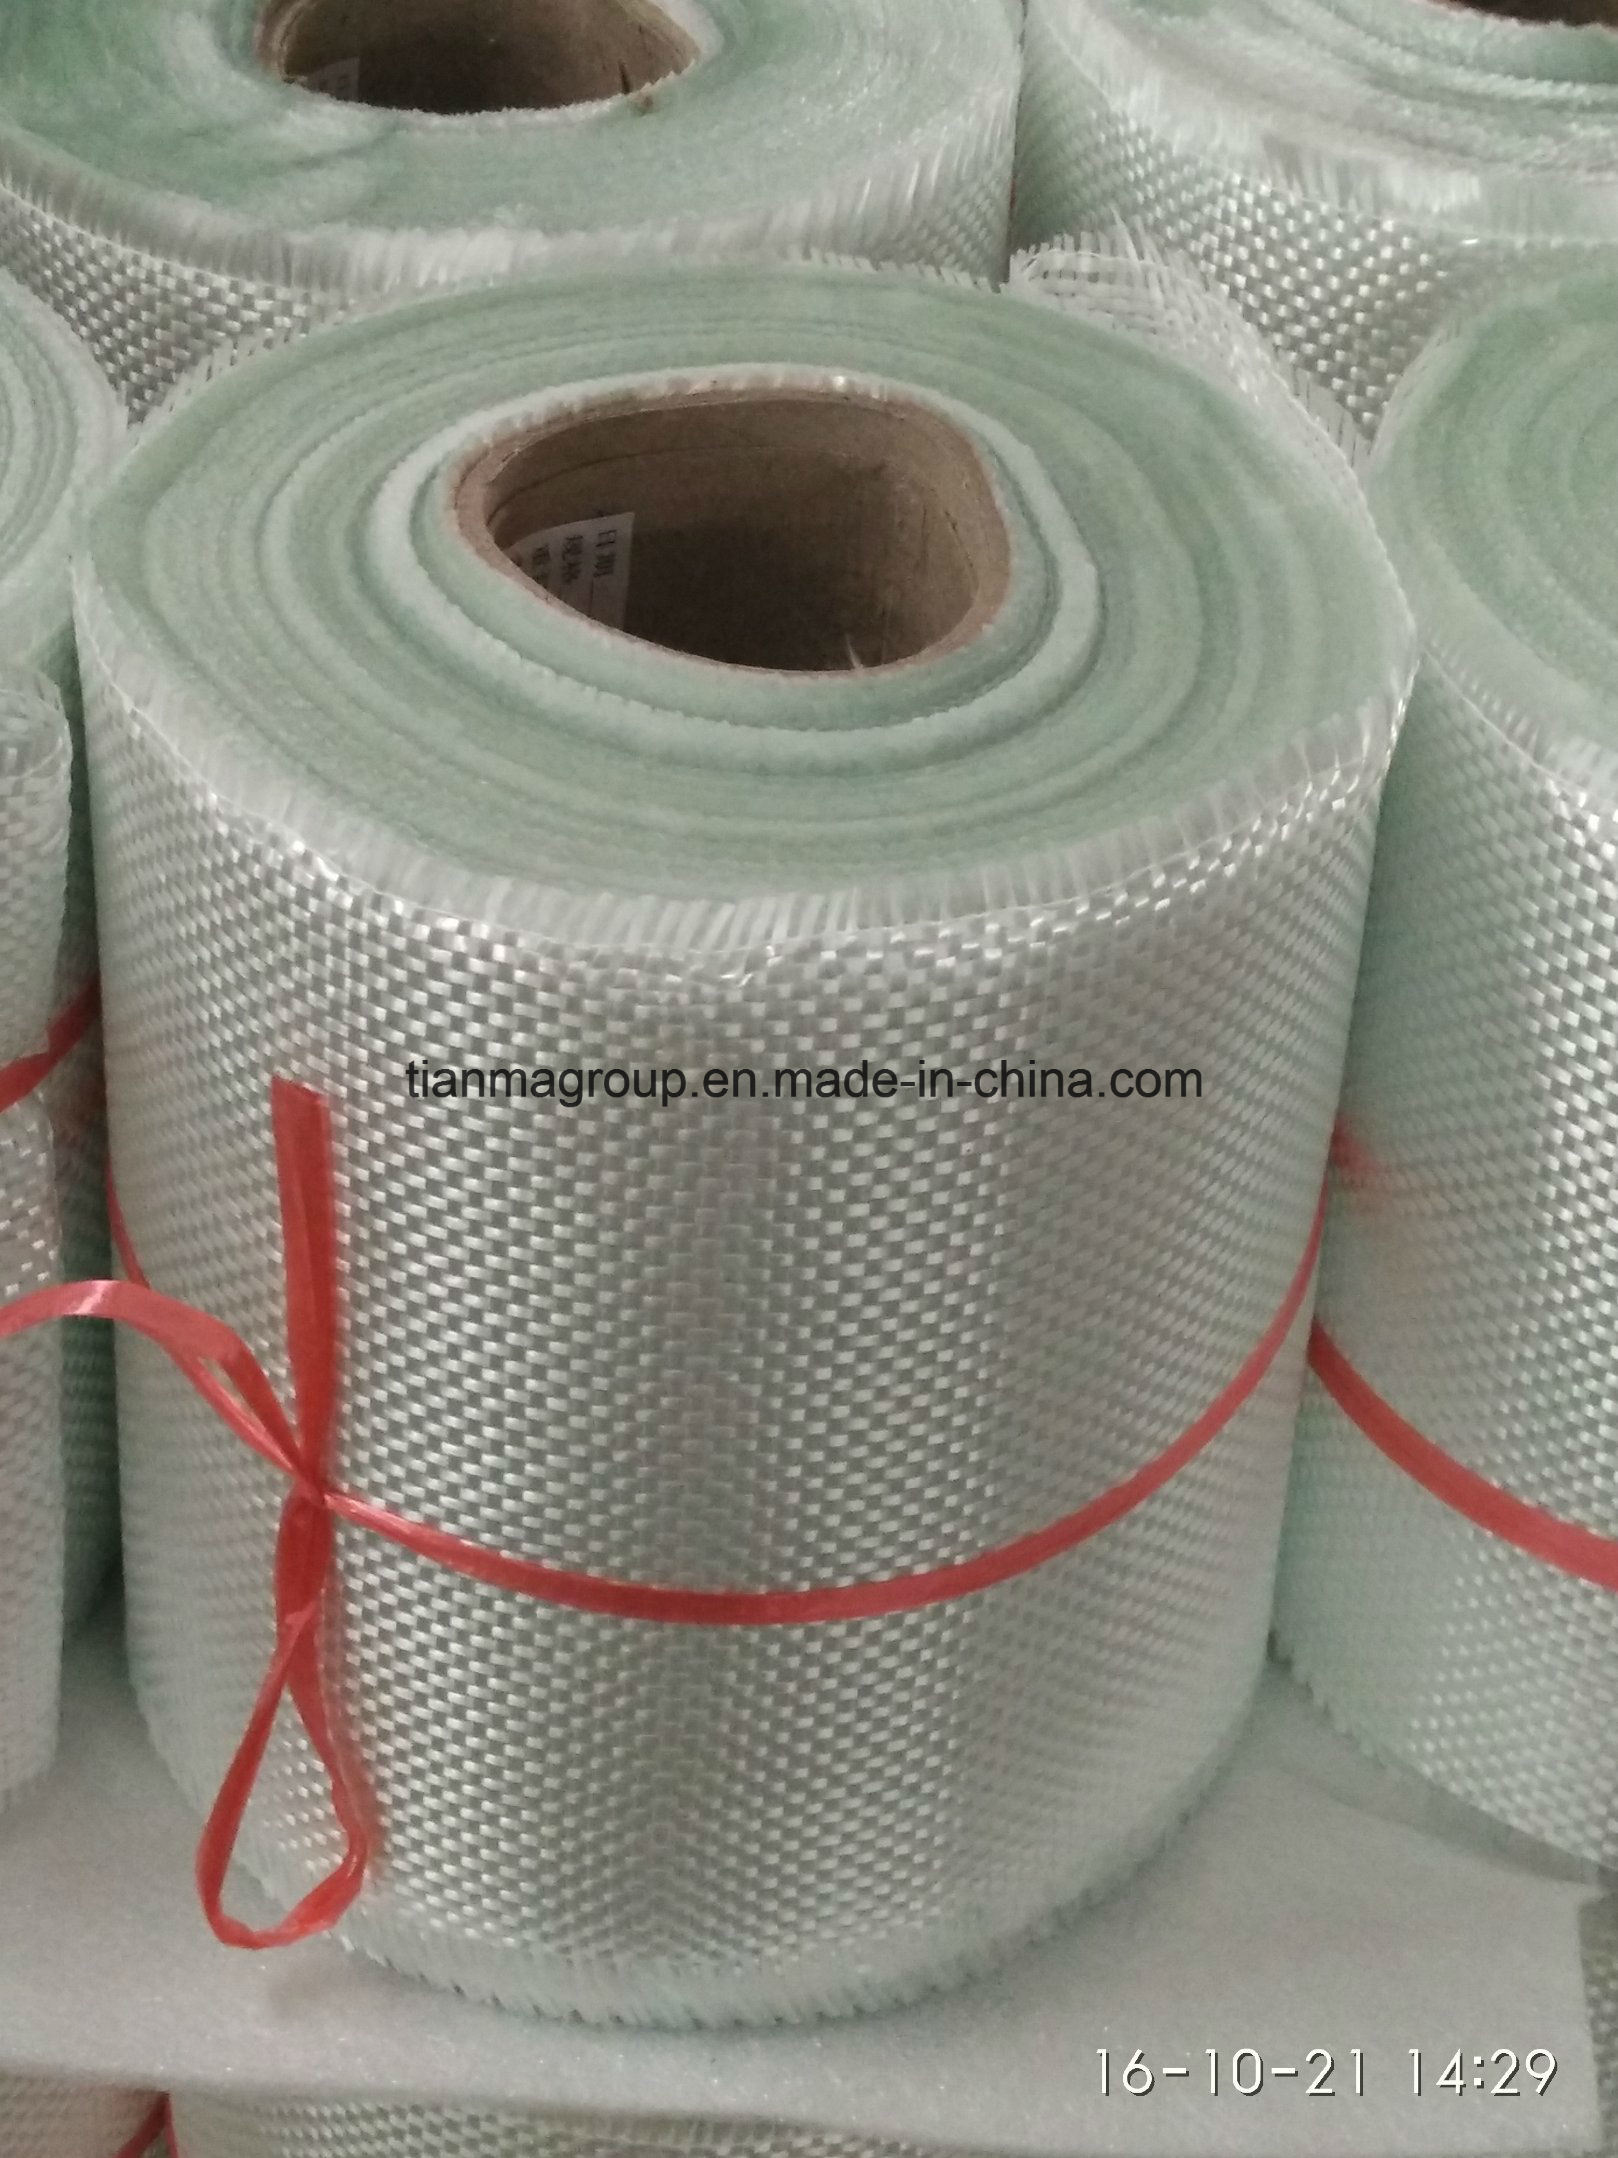 Glassfiber Woven Roving Fiber Glass Cloth or Tape 600g